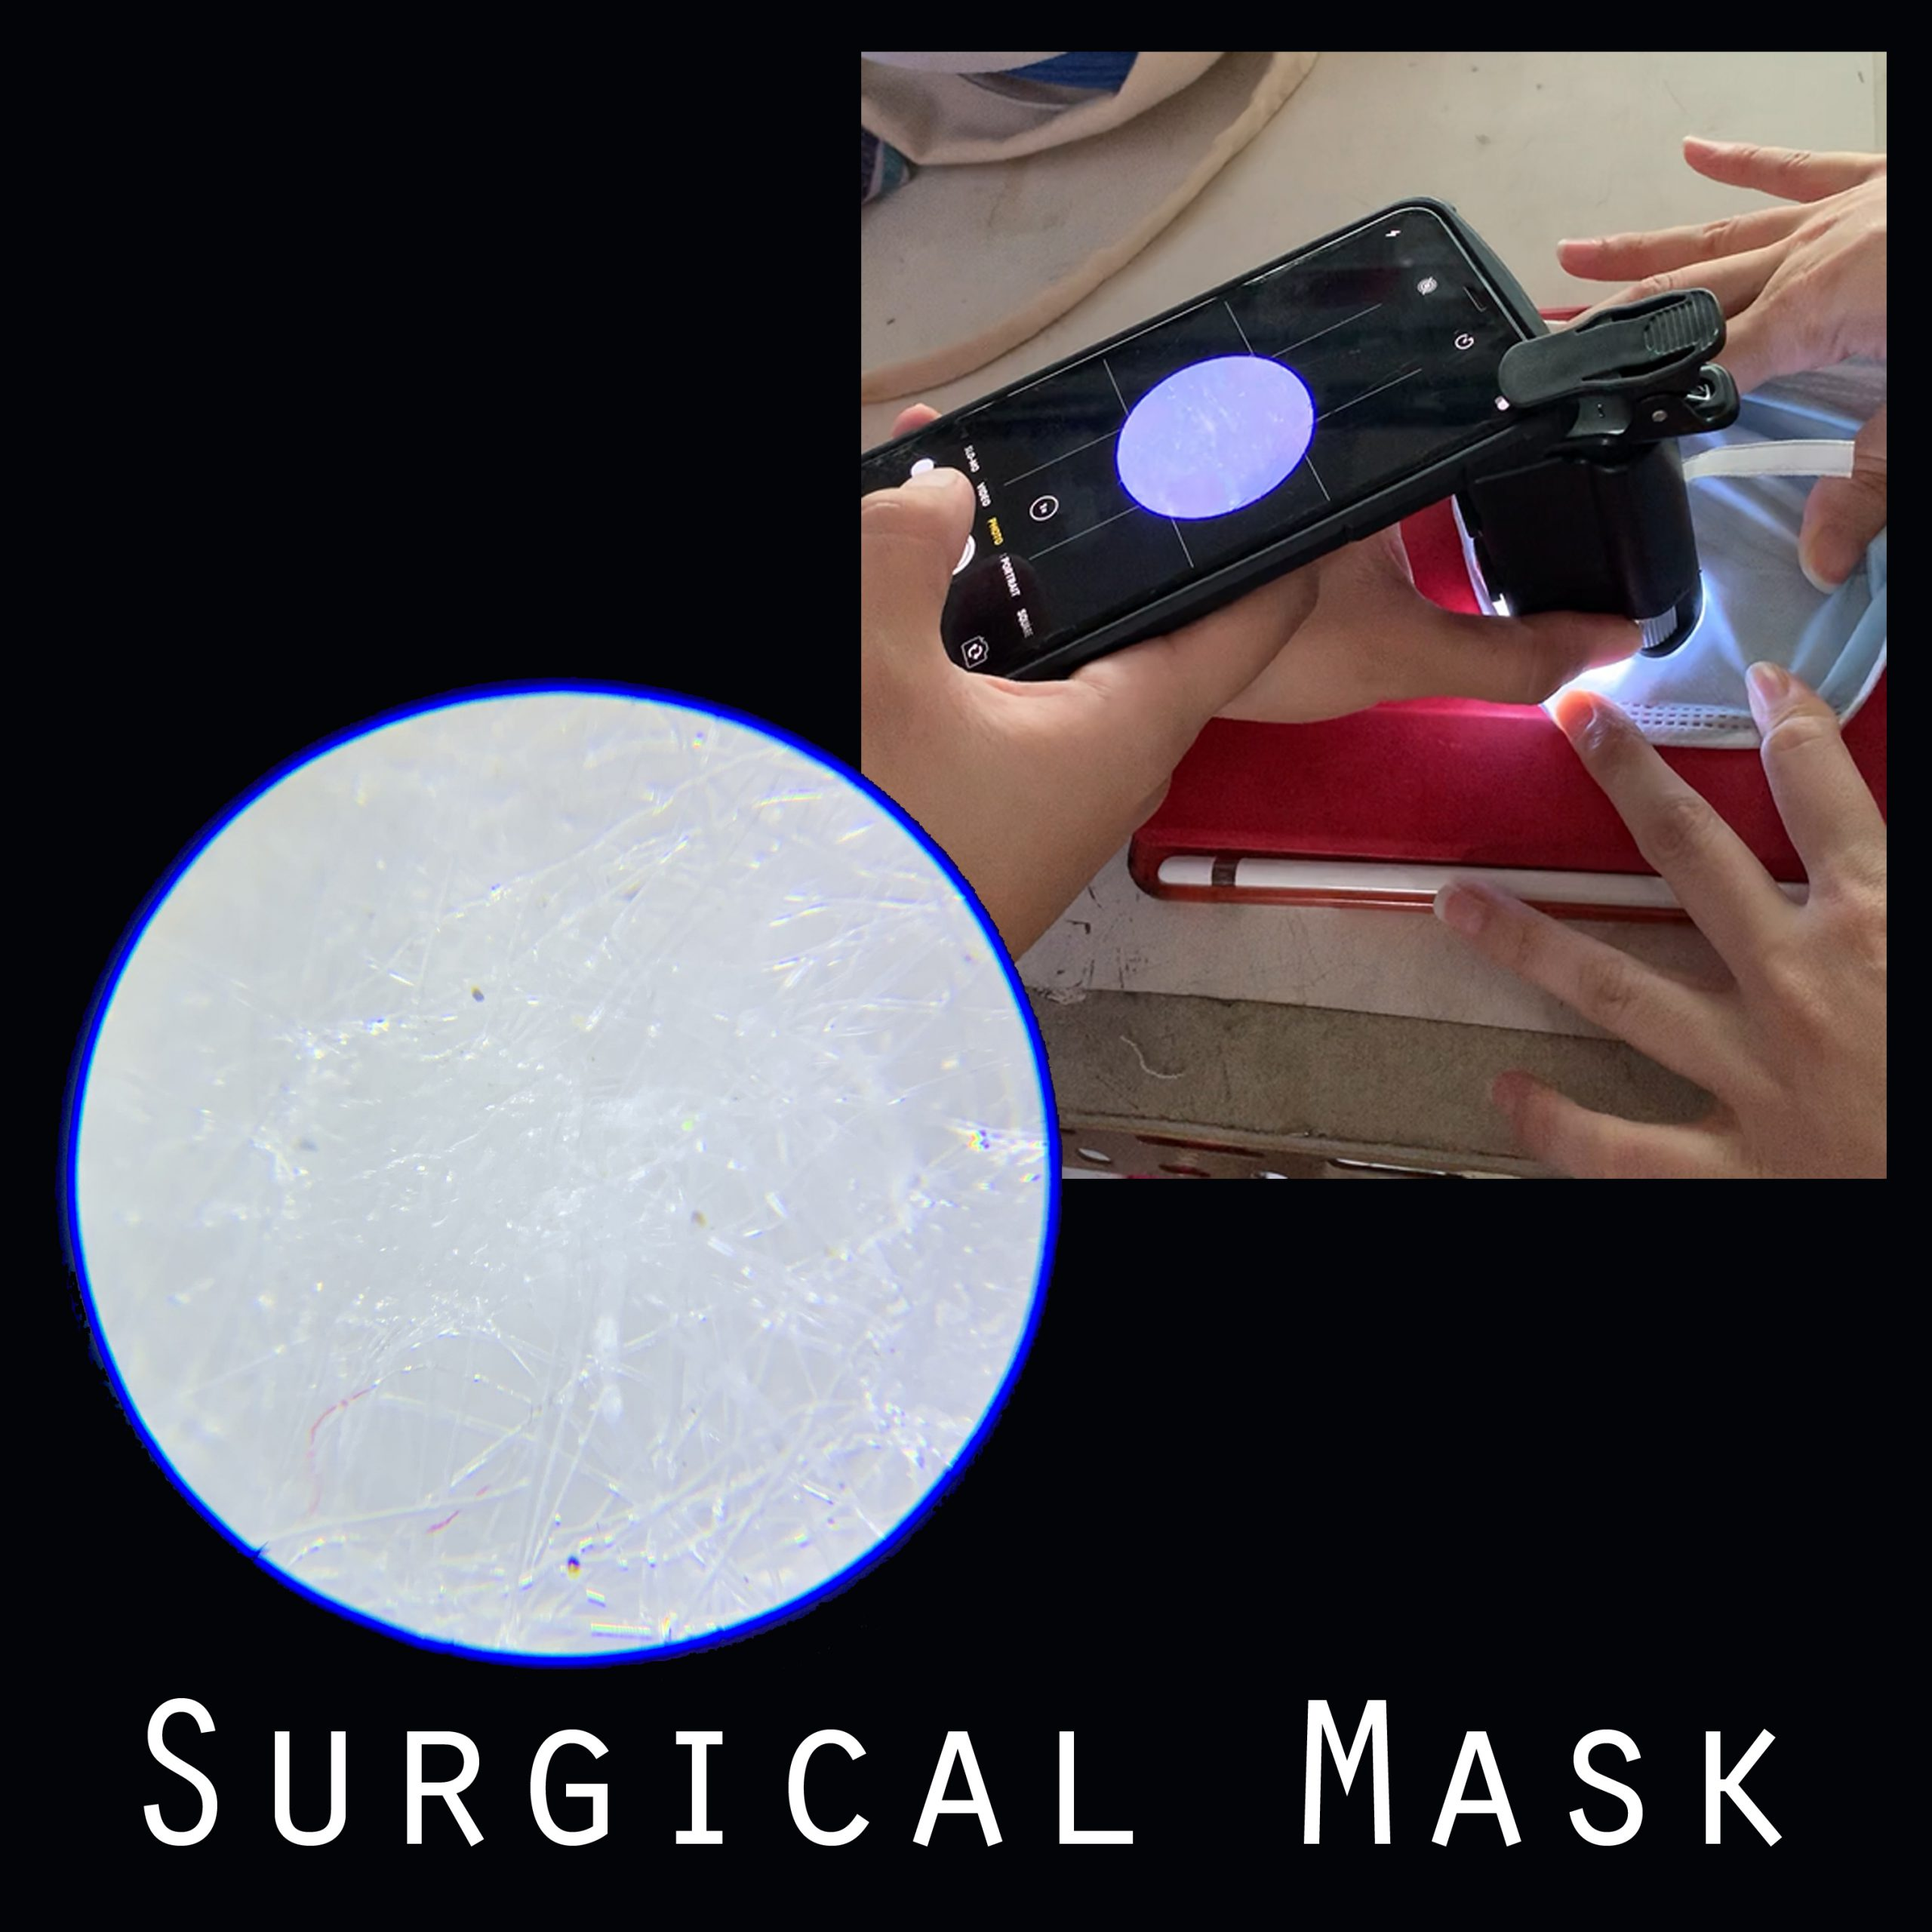 x50 magnify fabric surface surgical masks